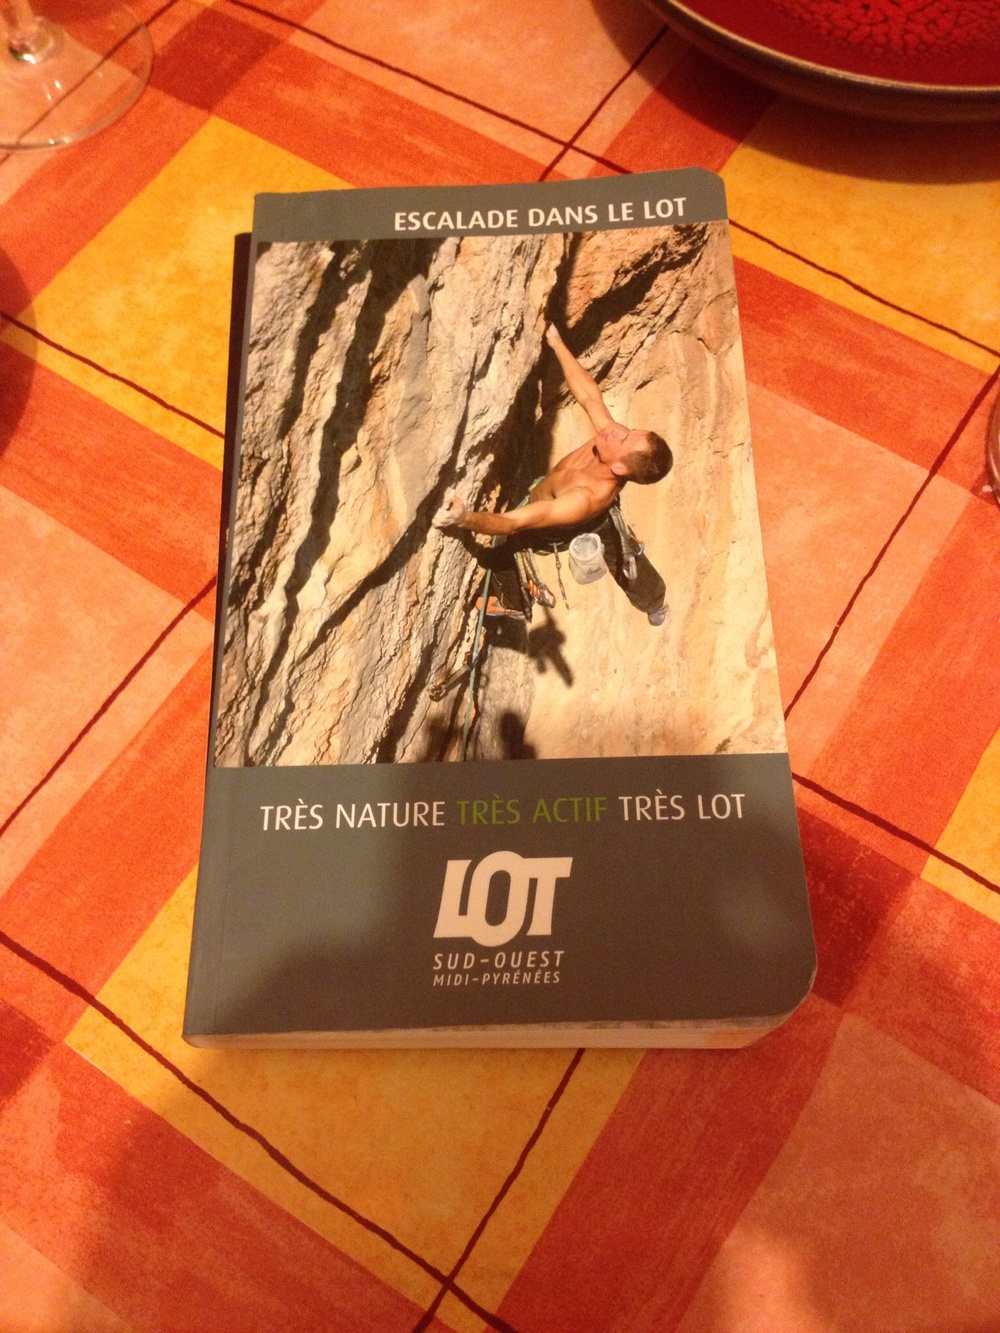 even in a relative backwater of France, two hours inland from Bordeaux, there is a ridiculous amount of sport climbing.